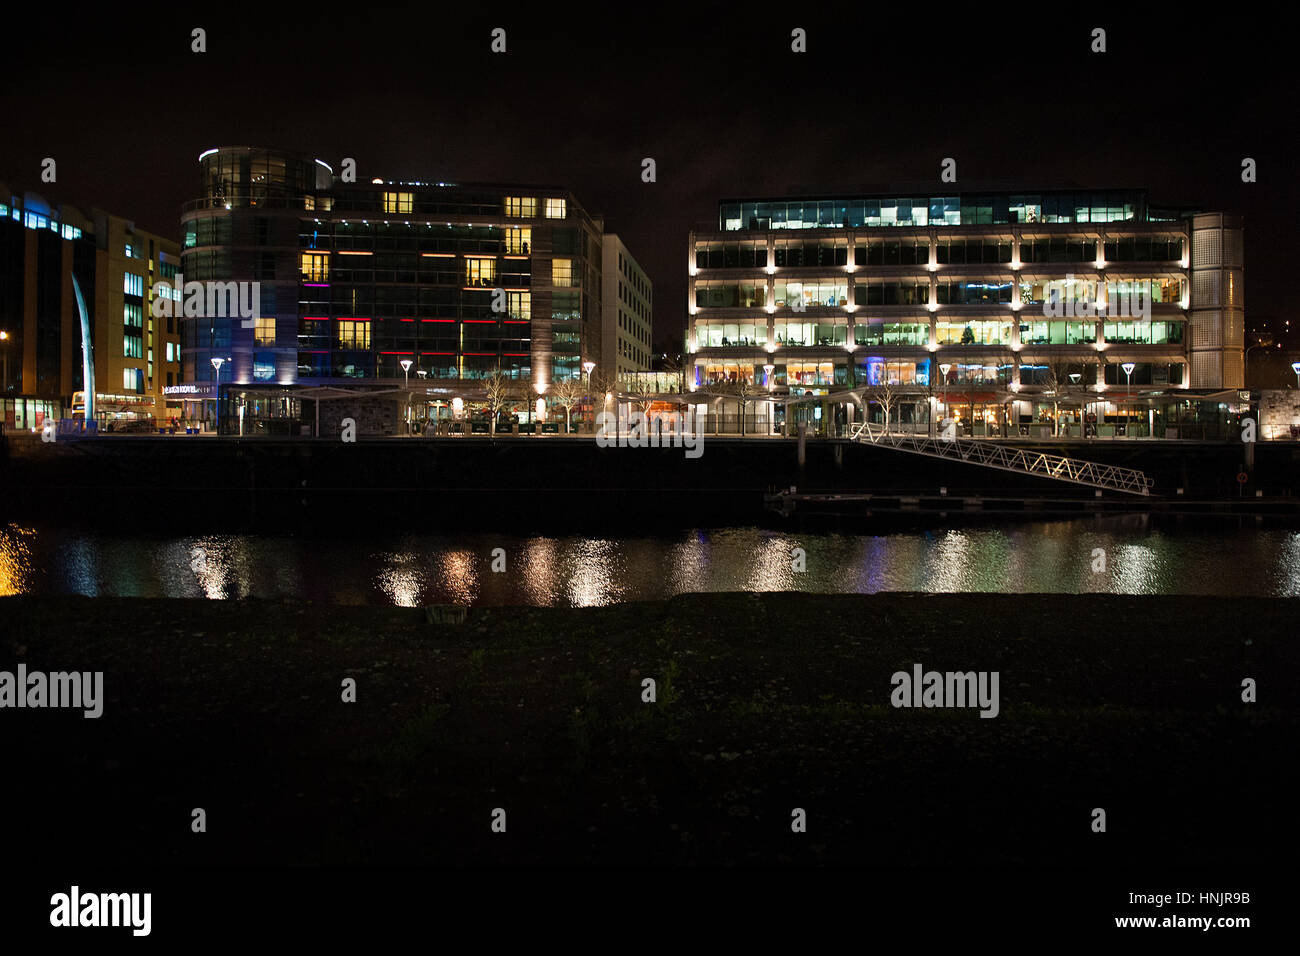 Clayton Hotel on Lapps Quay in Cork City at night which is part of the dockland rejuvenation - Stock Image